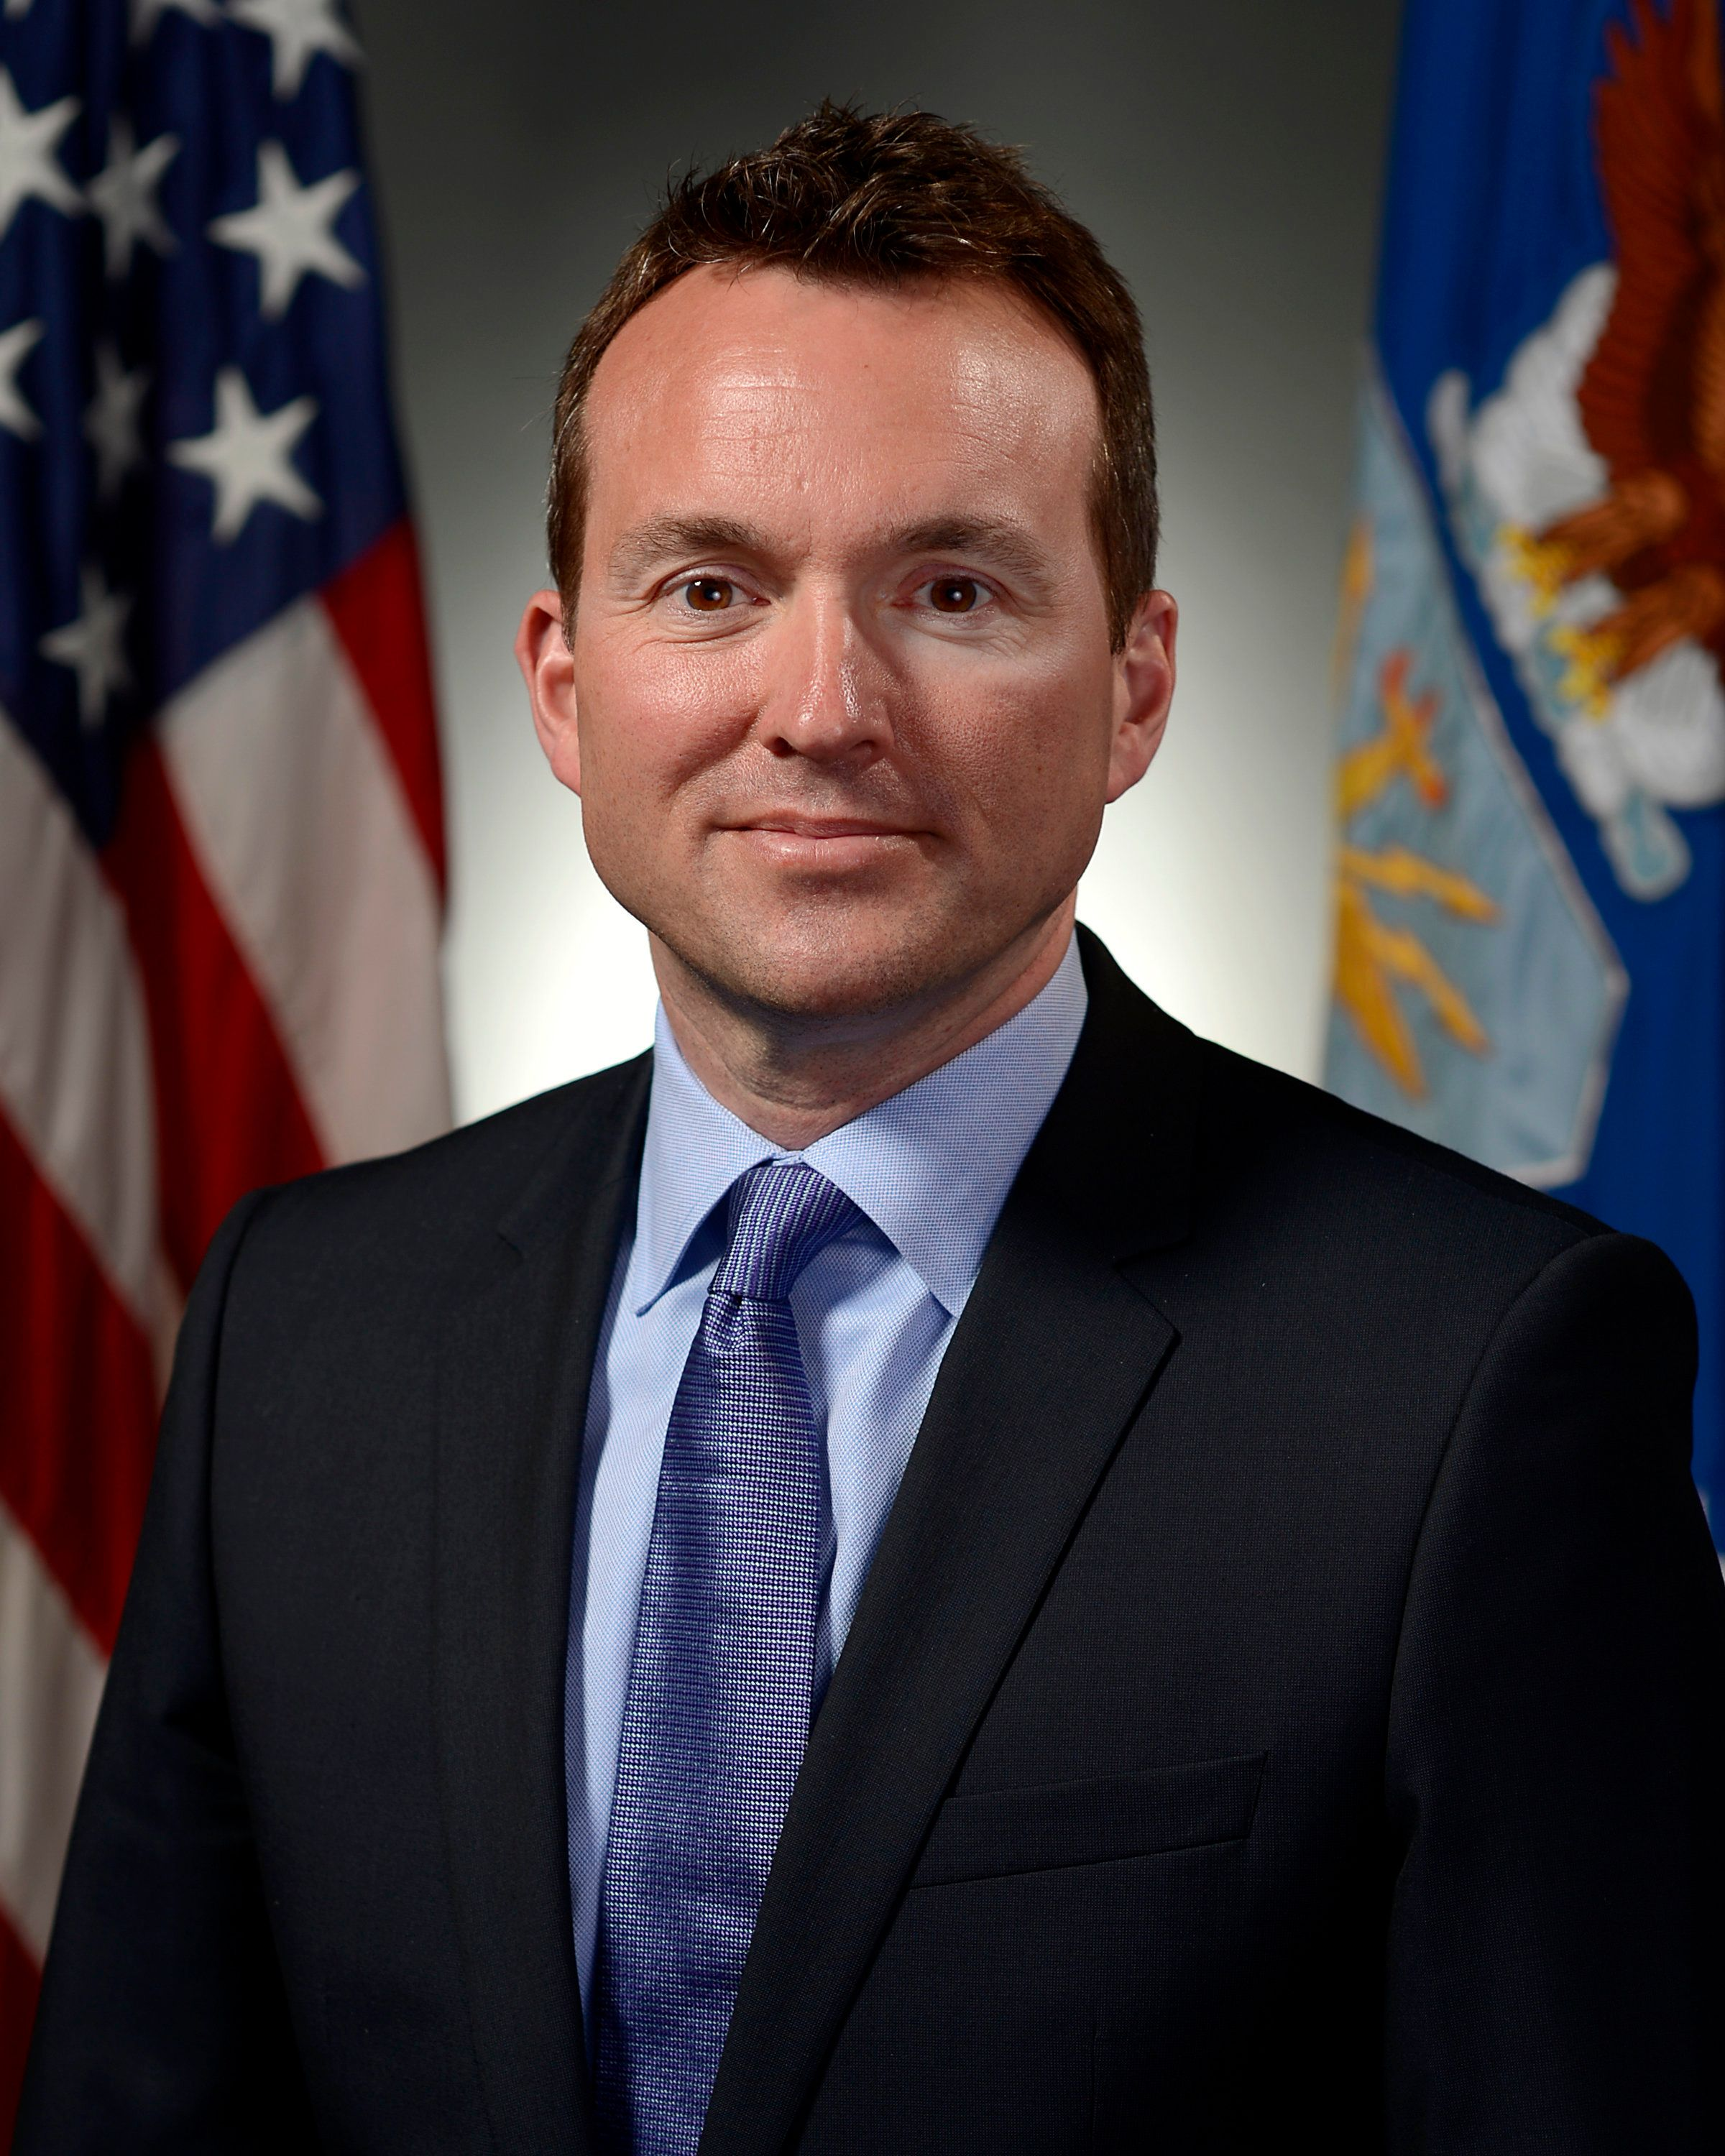 The president plans to nominateEric Fanning (above) as Army secretary.